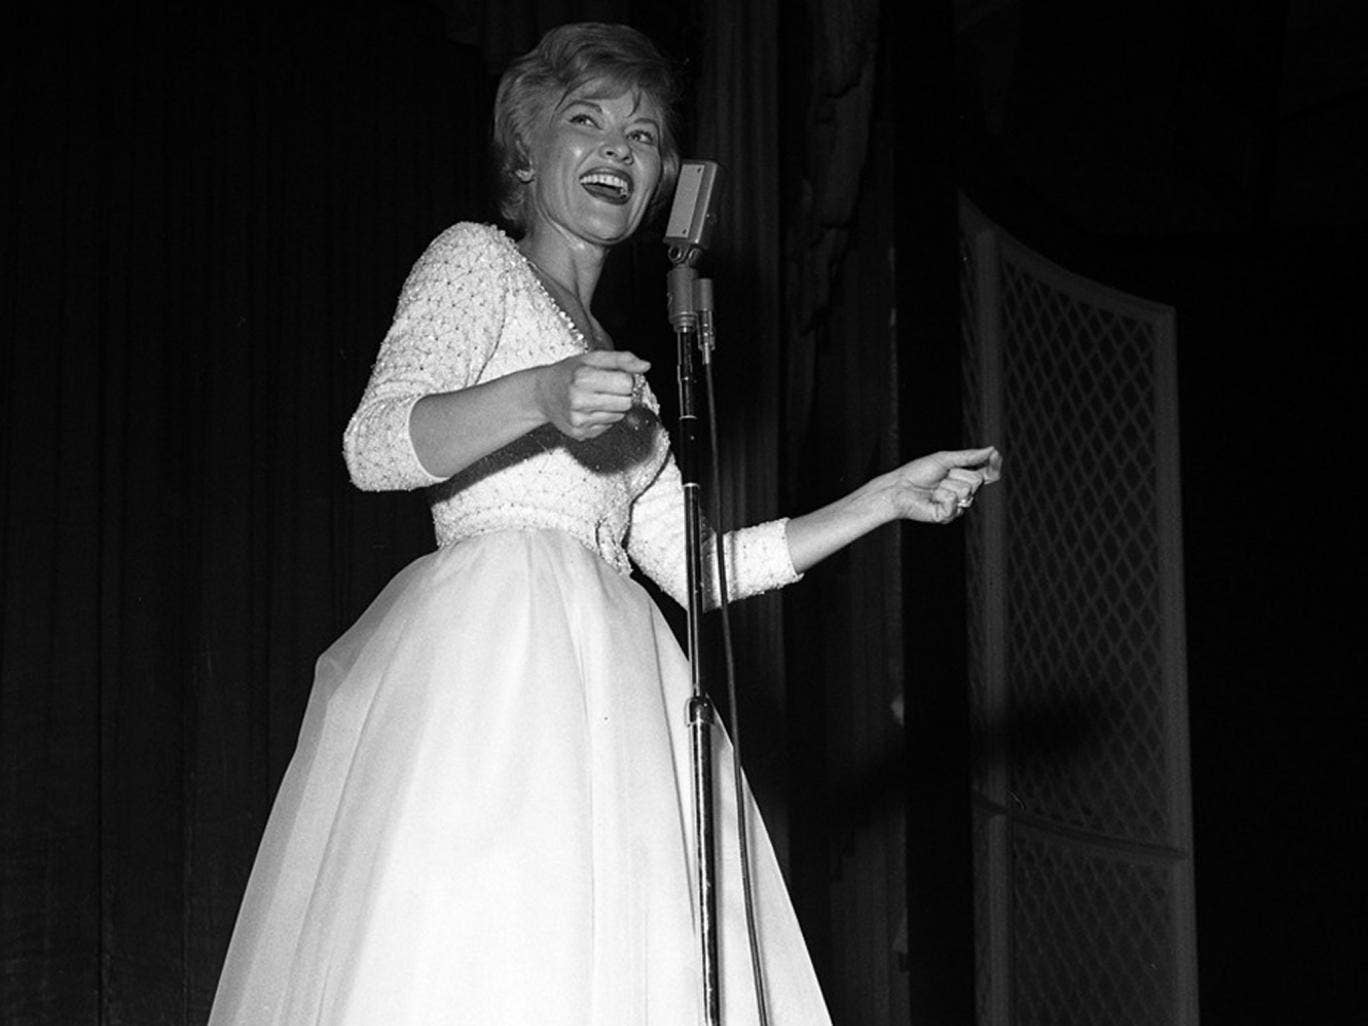 Page performs at The Dunes Hotel, Las Vegas, in 1962